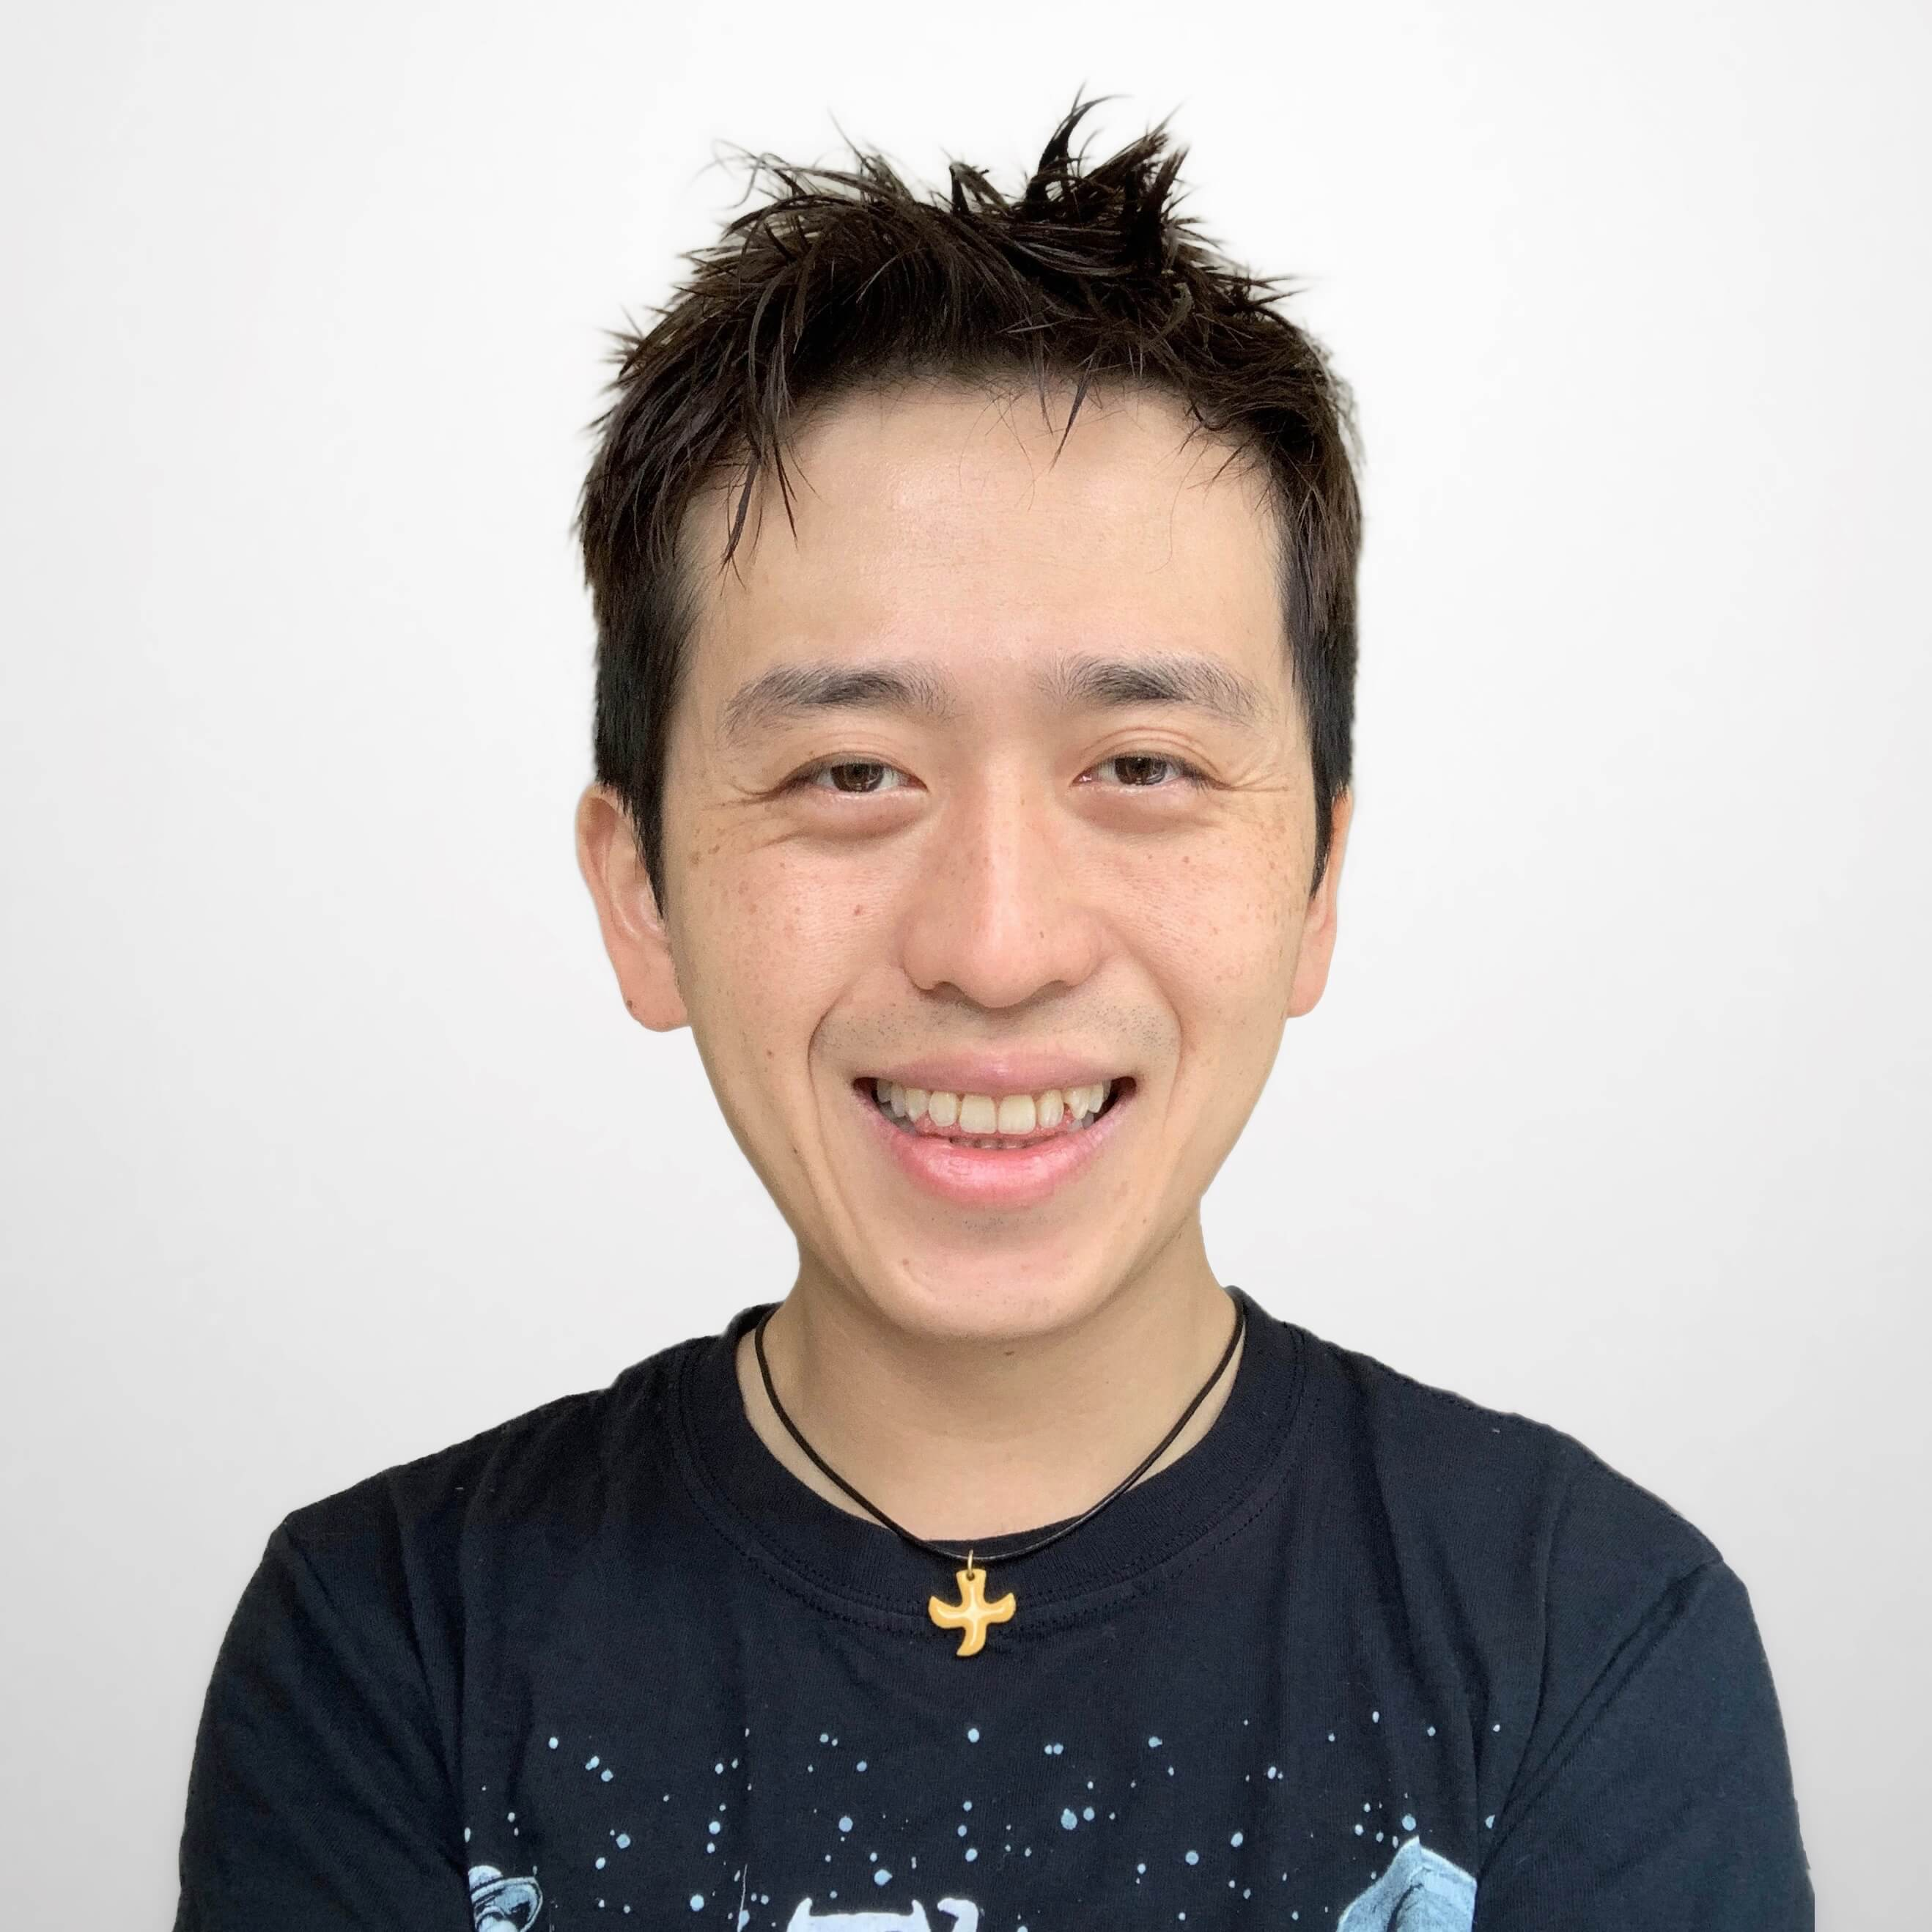 Photograph of Si Chun Lam, data scientist and creative professional.